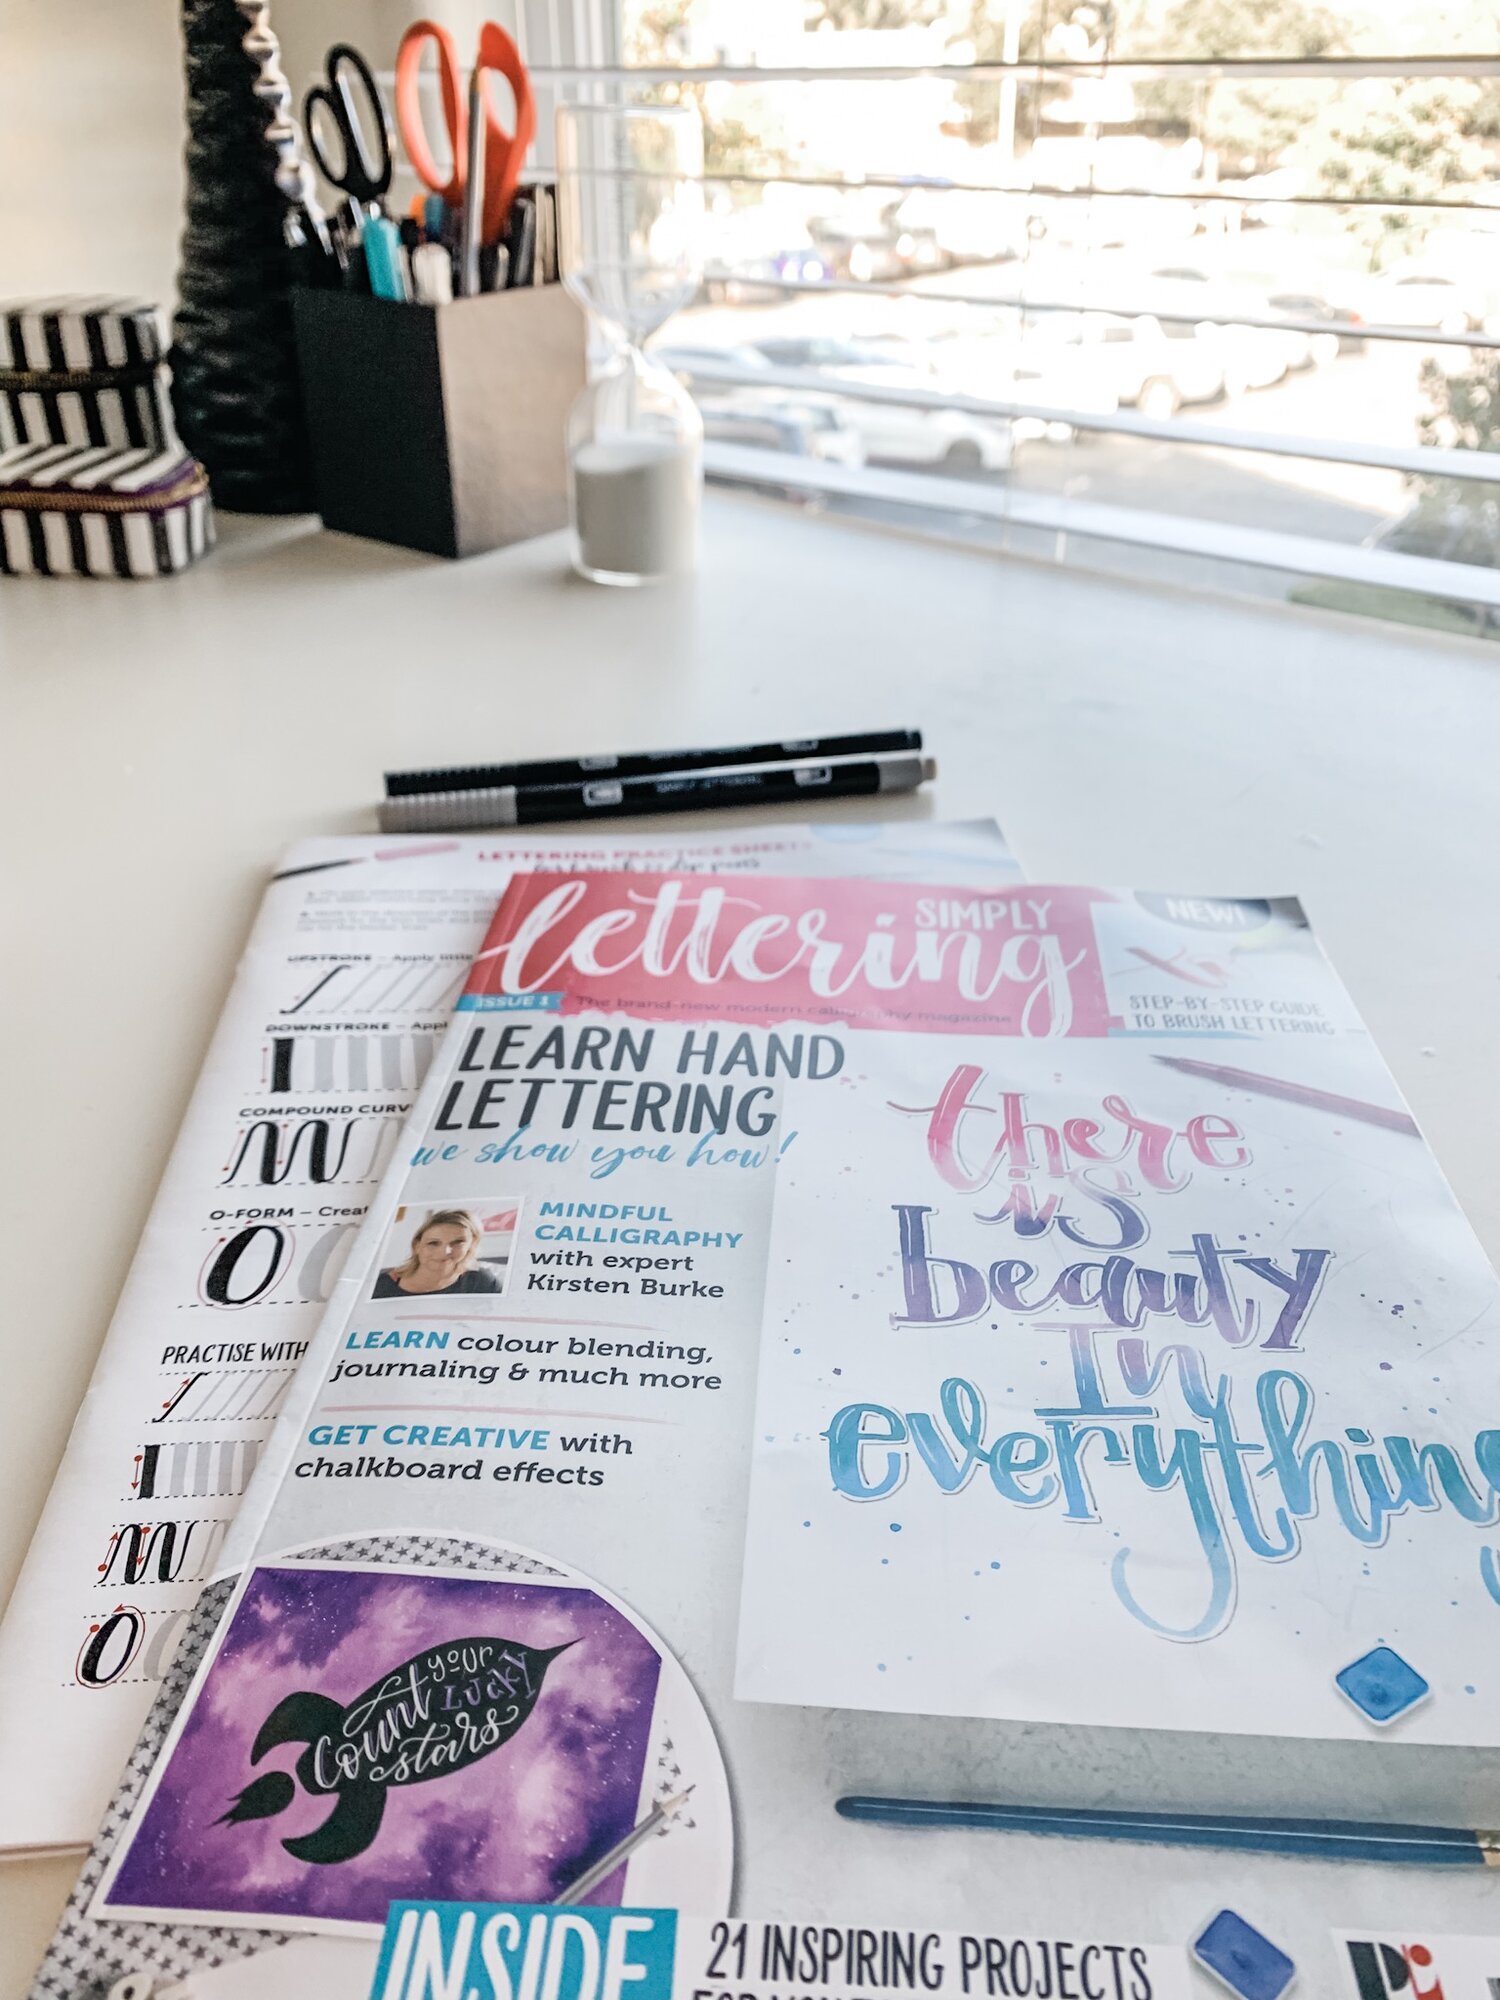 Simply Lettering Magazine and Free Goodies - I can't wait to practice all the hand lettering and calligraphy techniques inside!